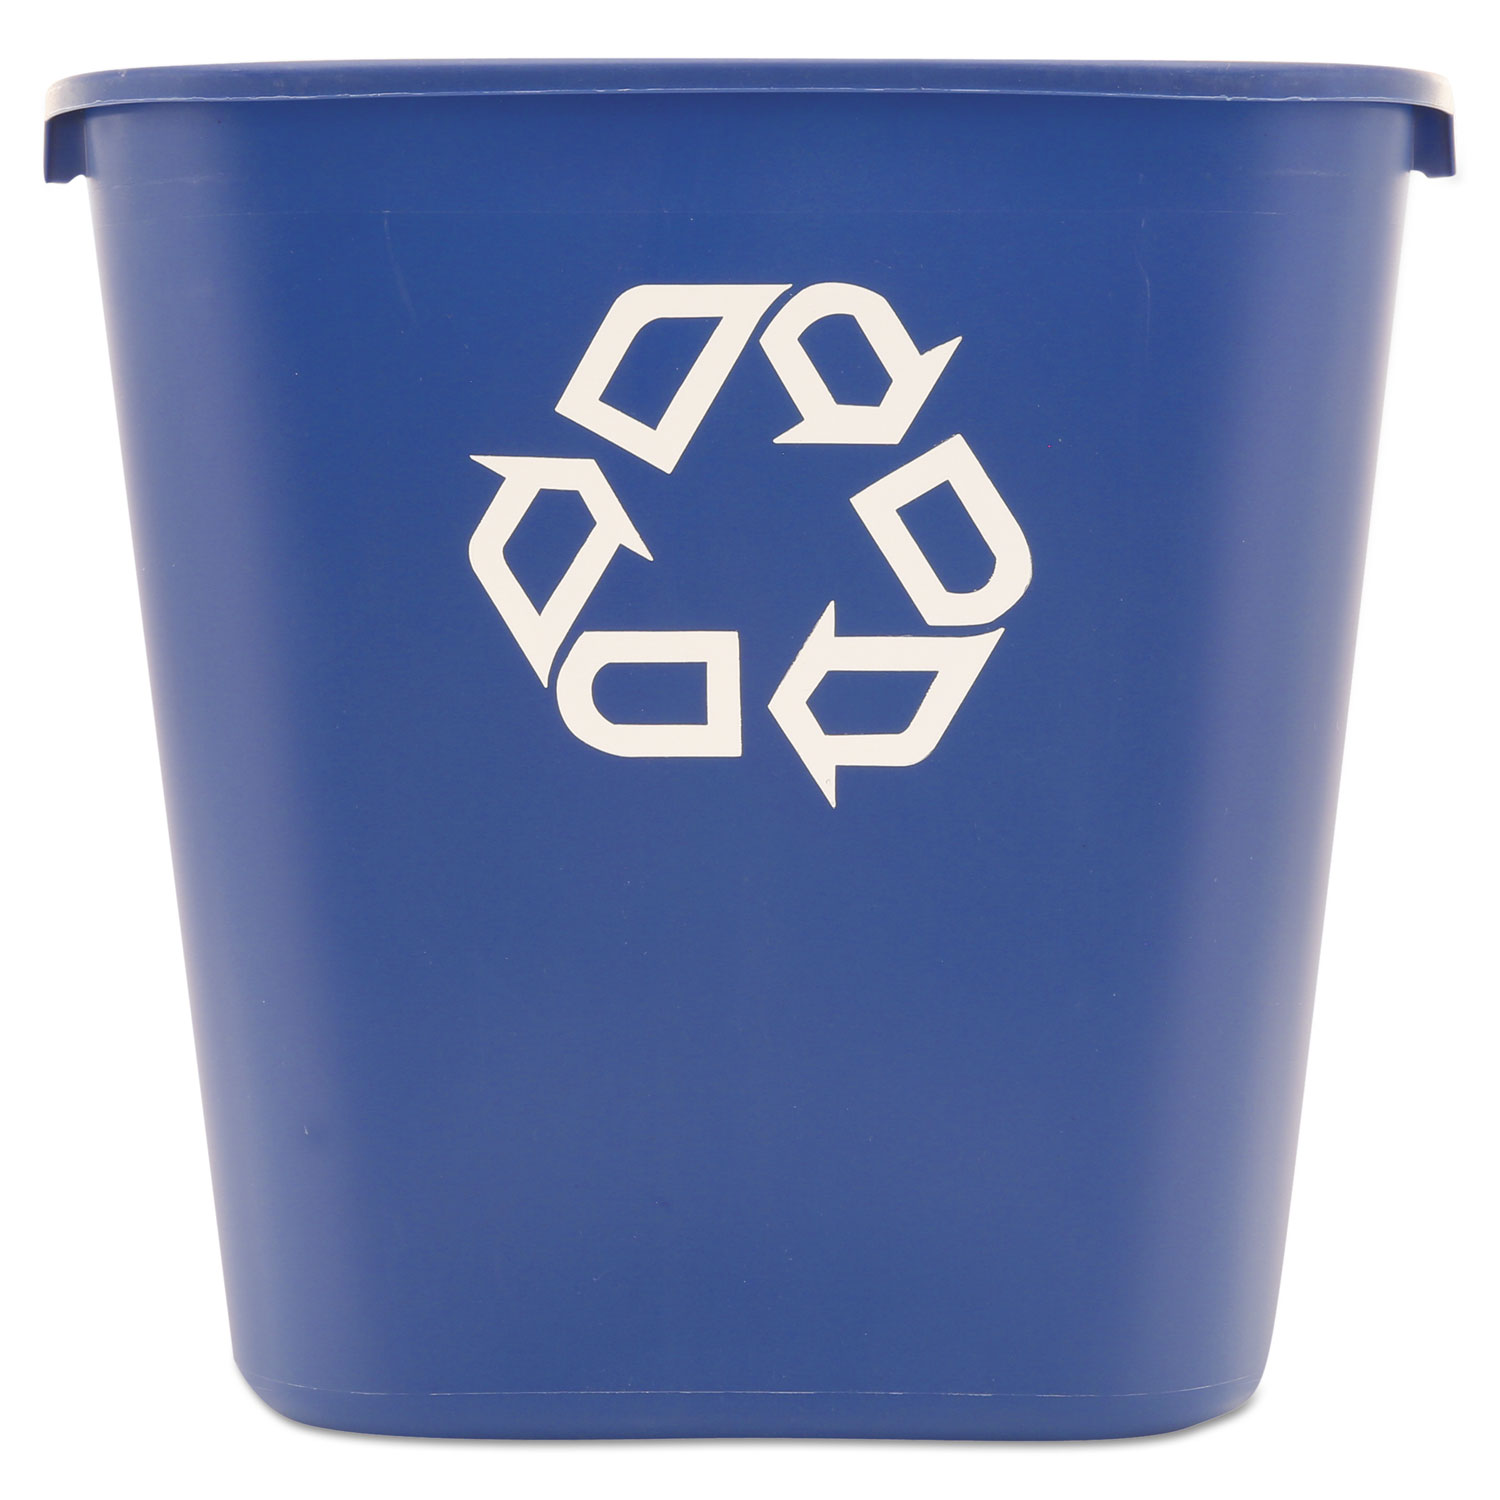 Medium Deskside Recycling Container, Rectangular, Plastic, 28.13 qt, Blue